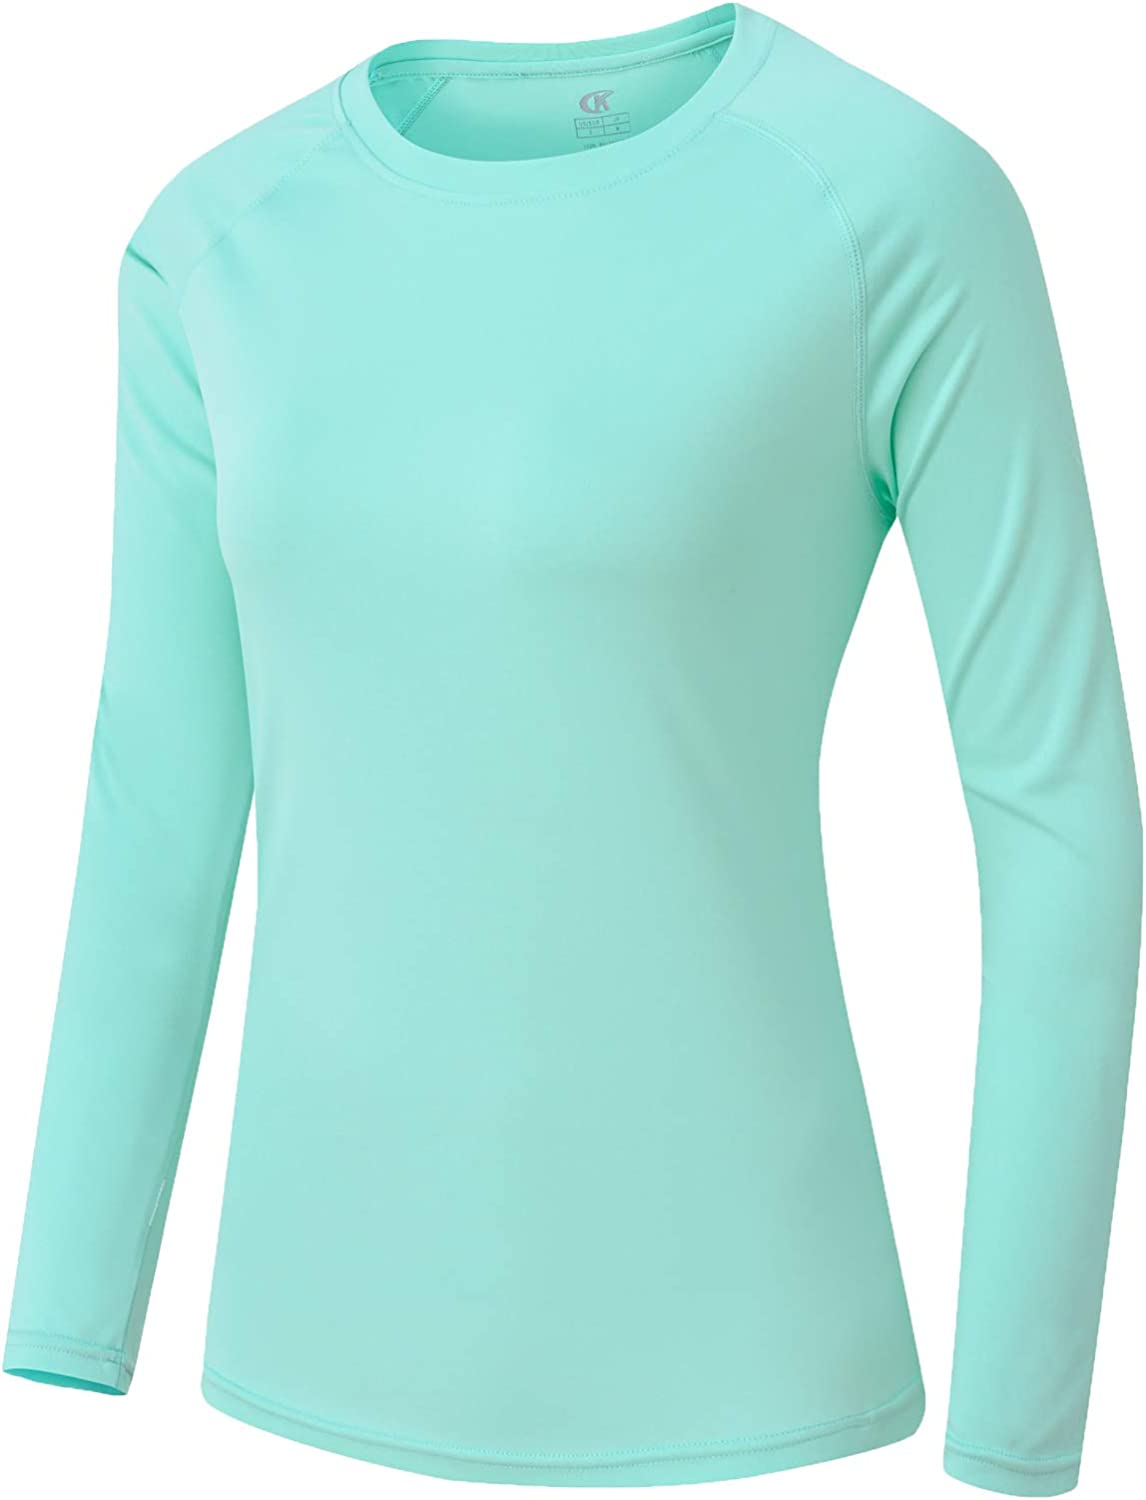 Women's Outlet ☆ Free Shipping Long Sleeve Shirts UPF 50+ Dry Protection SPF Quick Sun Challenge the lowest price of Japan